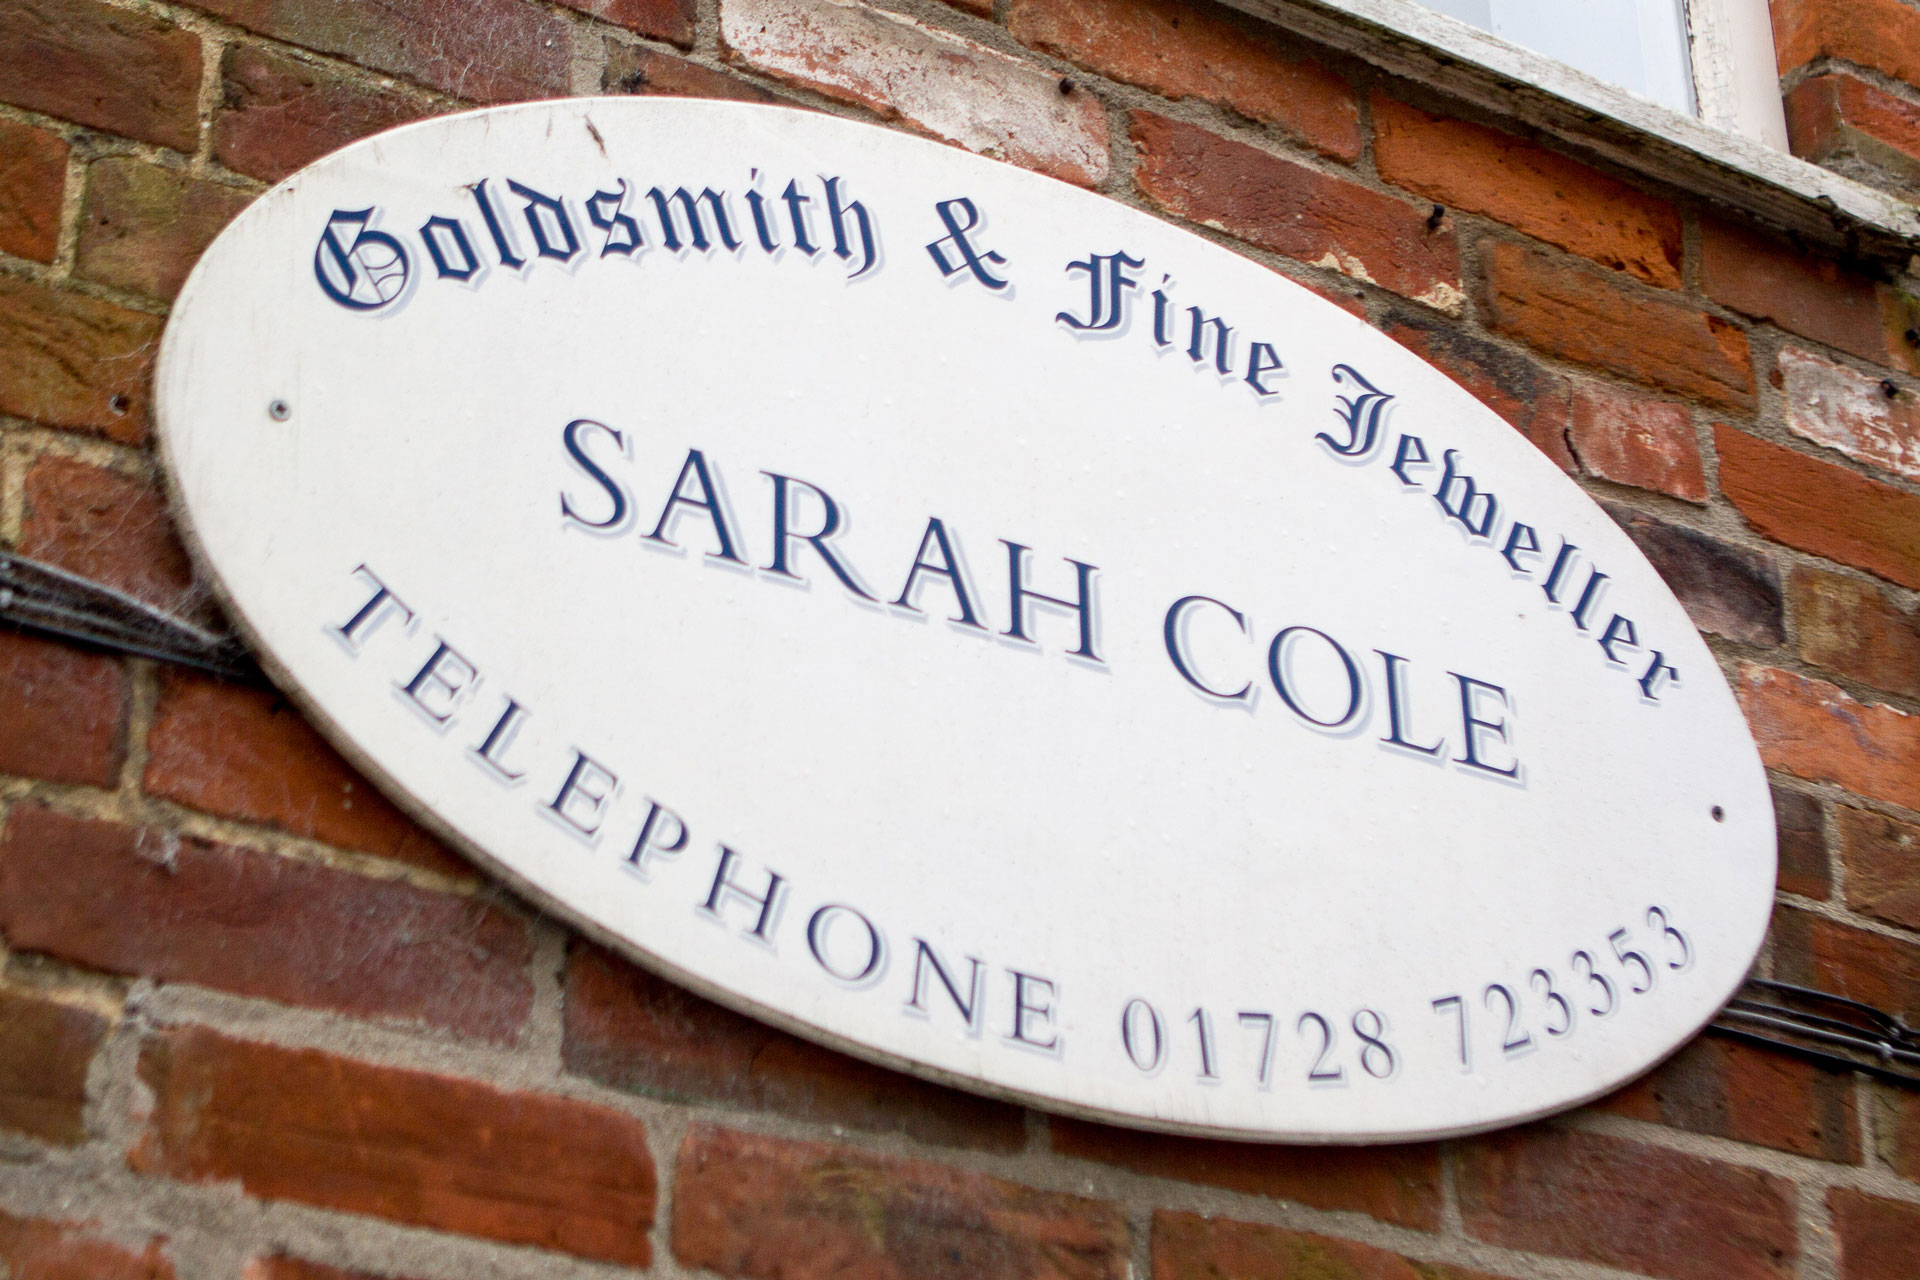 Sarah Cole Goldsmith and Fine Jeweller